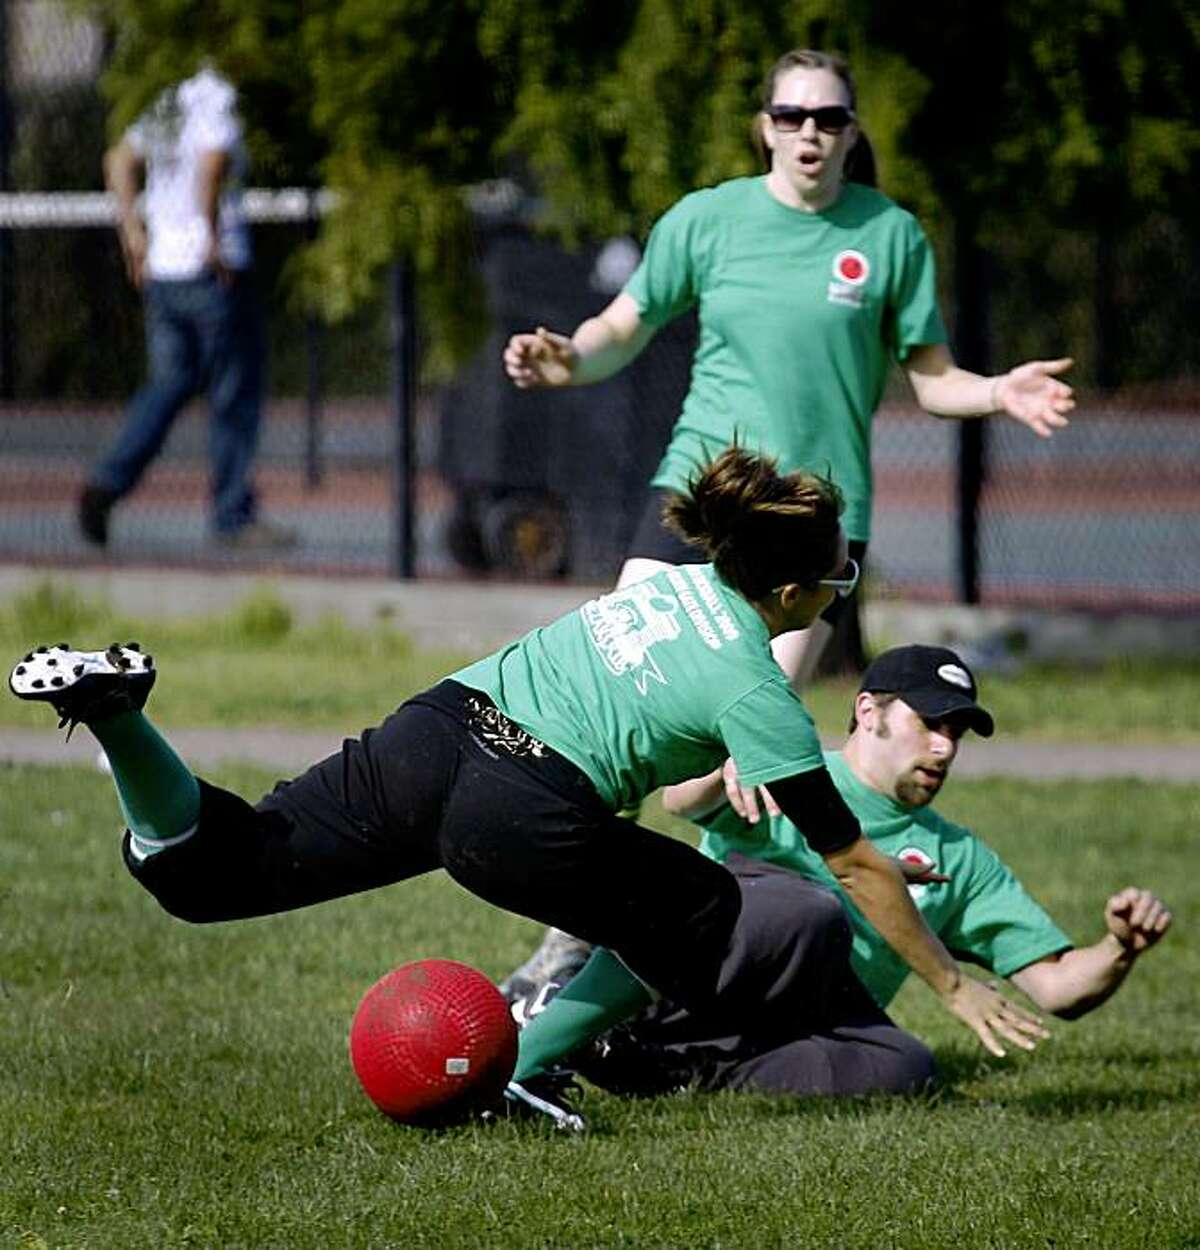 Players on the Spaceballs kickball team collide while fielding a kick by the High Rollers team during a game in a 16-team tournament of the World Adult Kickball Association Golden Gate division in San Francisco, Calif., on Saturday, Oct. 24, 2009.